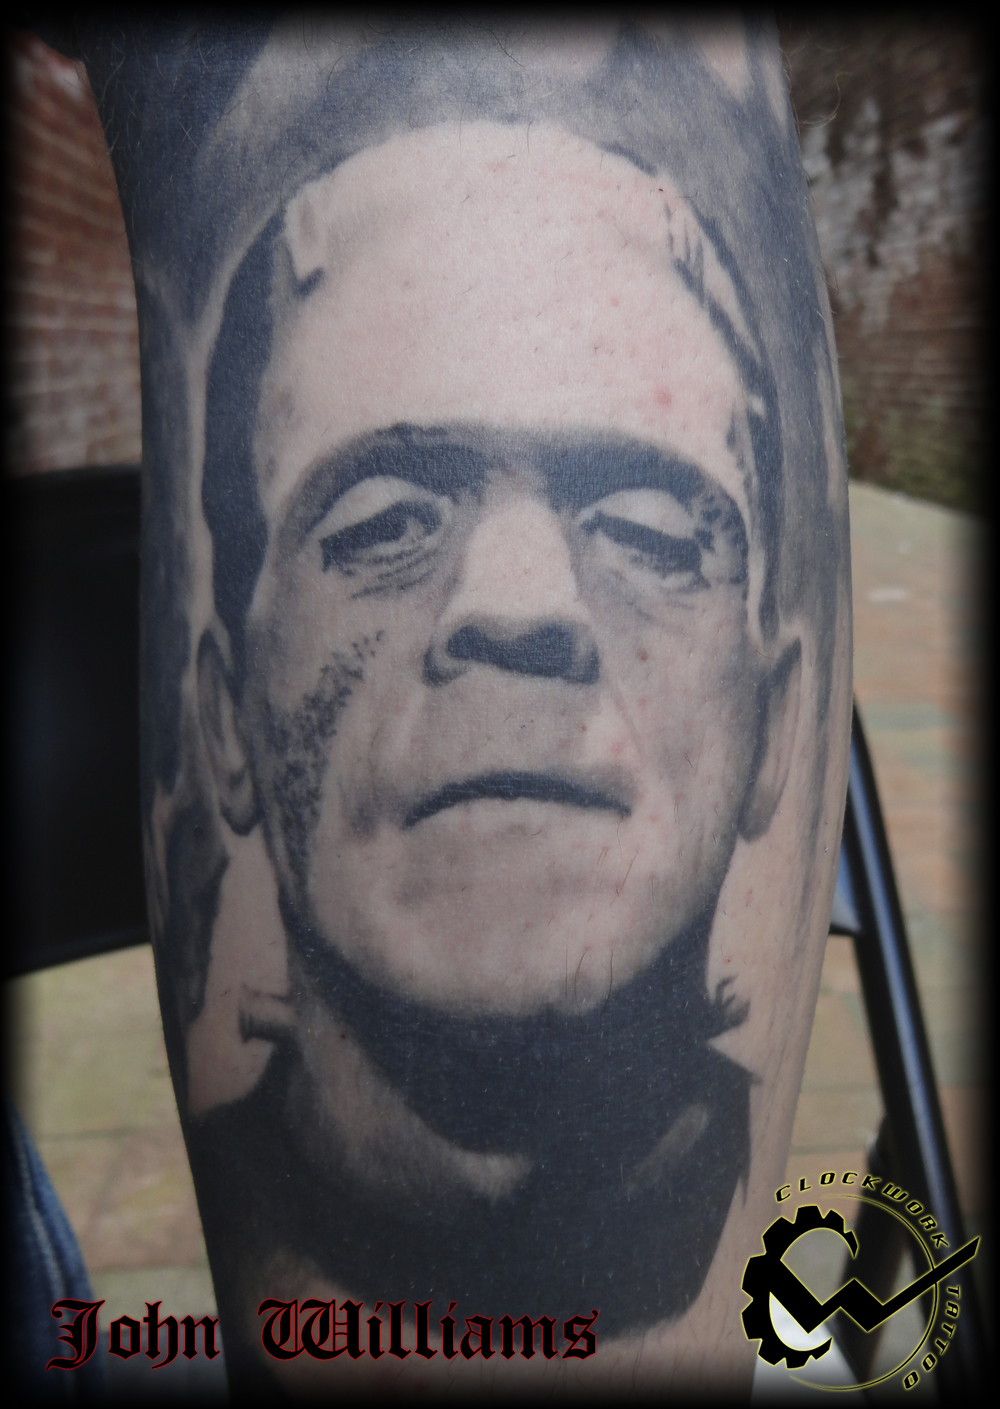 frankenstein-tattoo.jpg